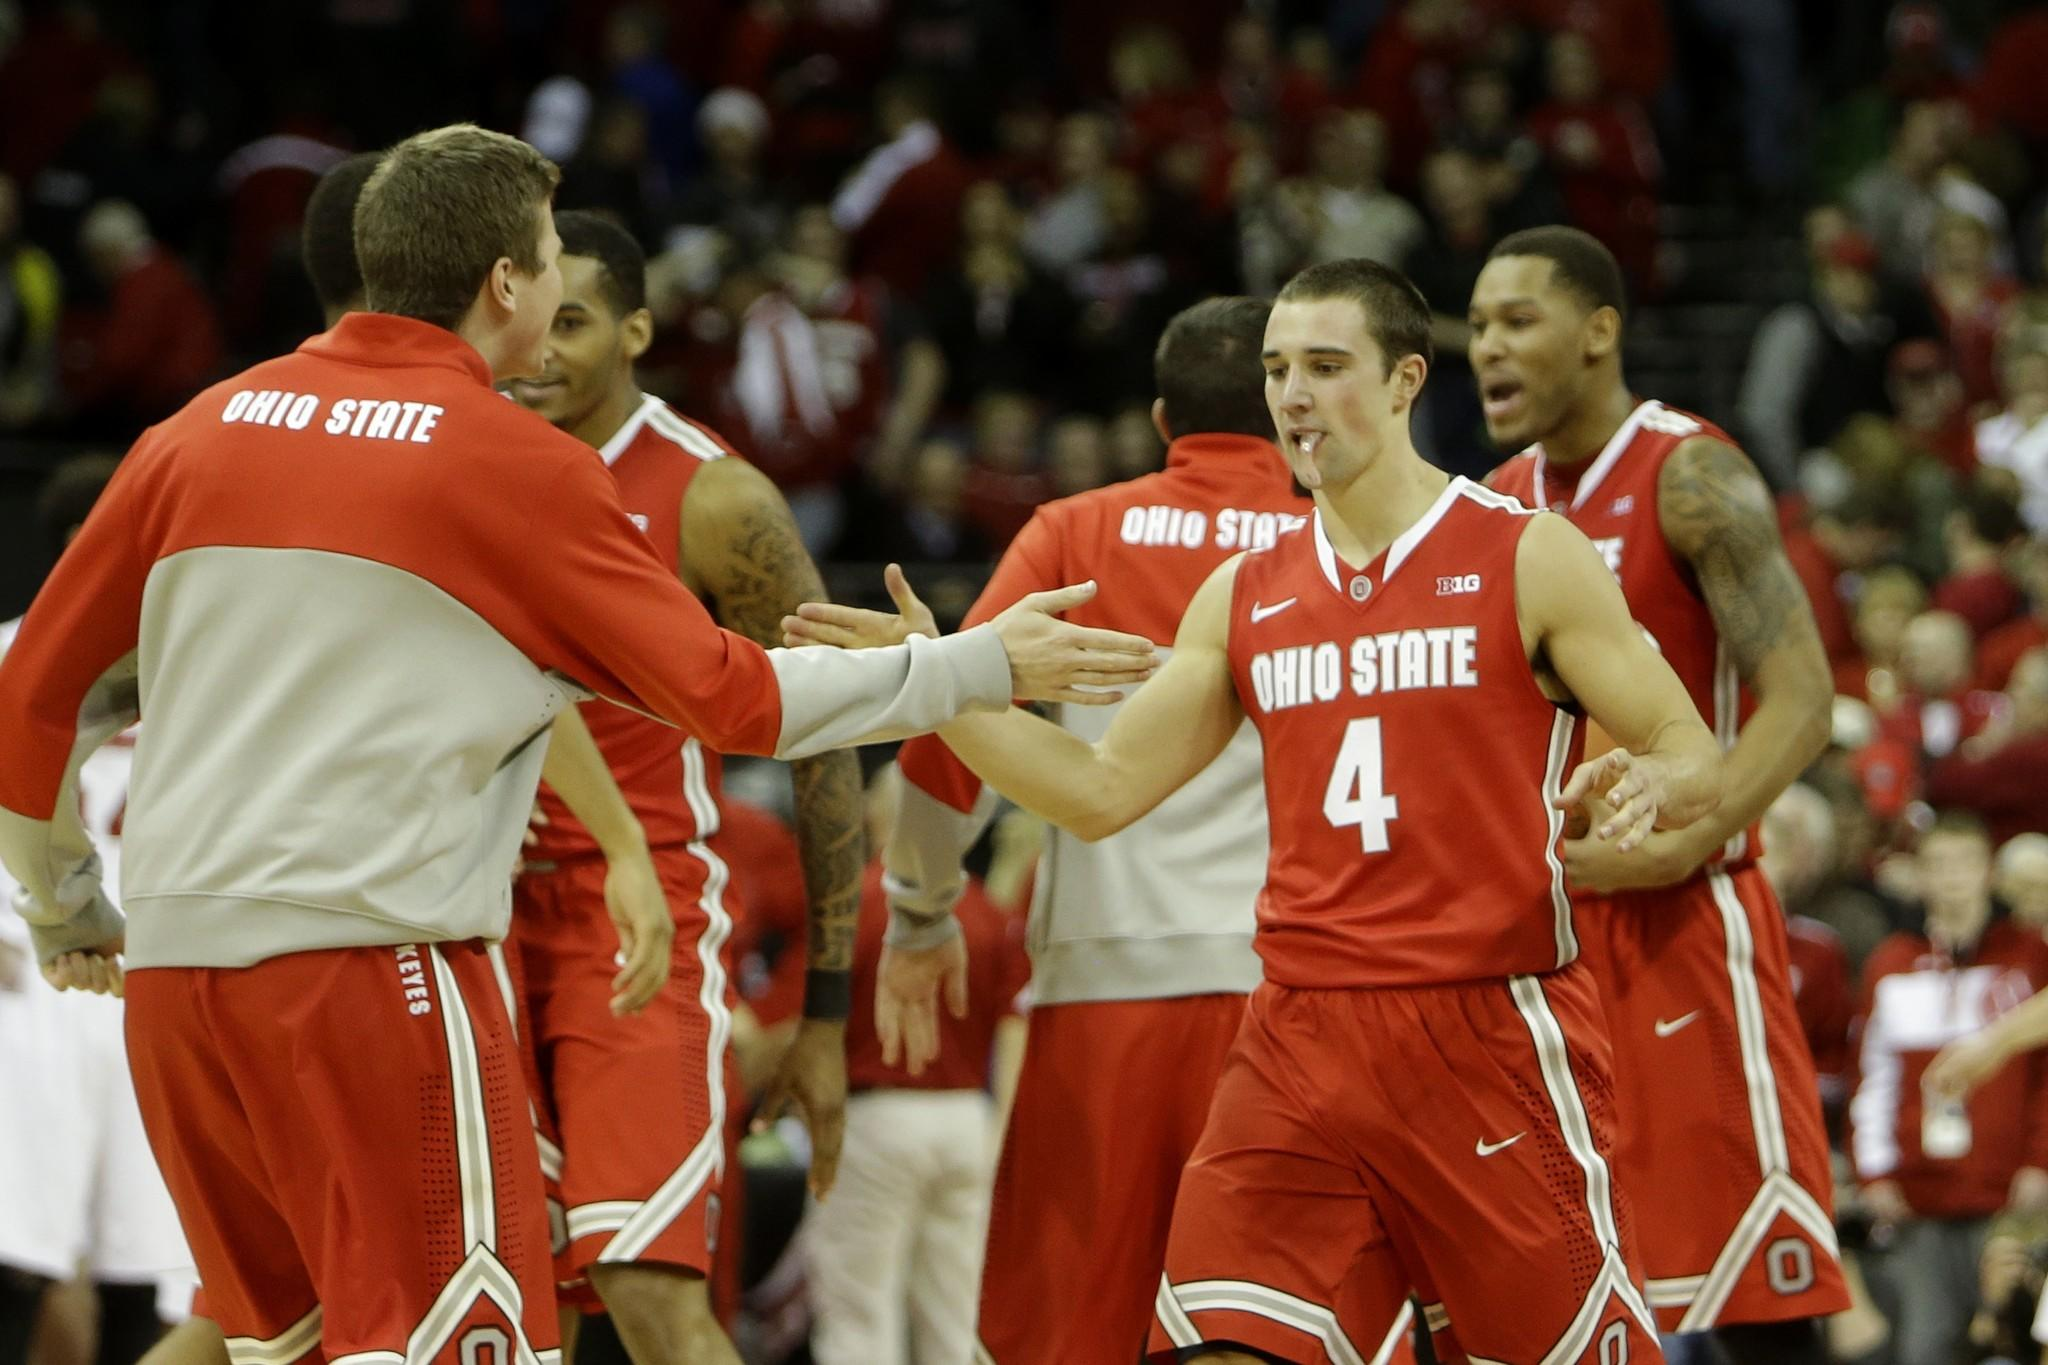 Aaron Craft (4) of Ohio State celebrates after the win over Wisconsin.